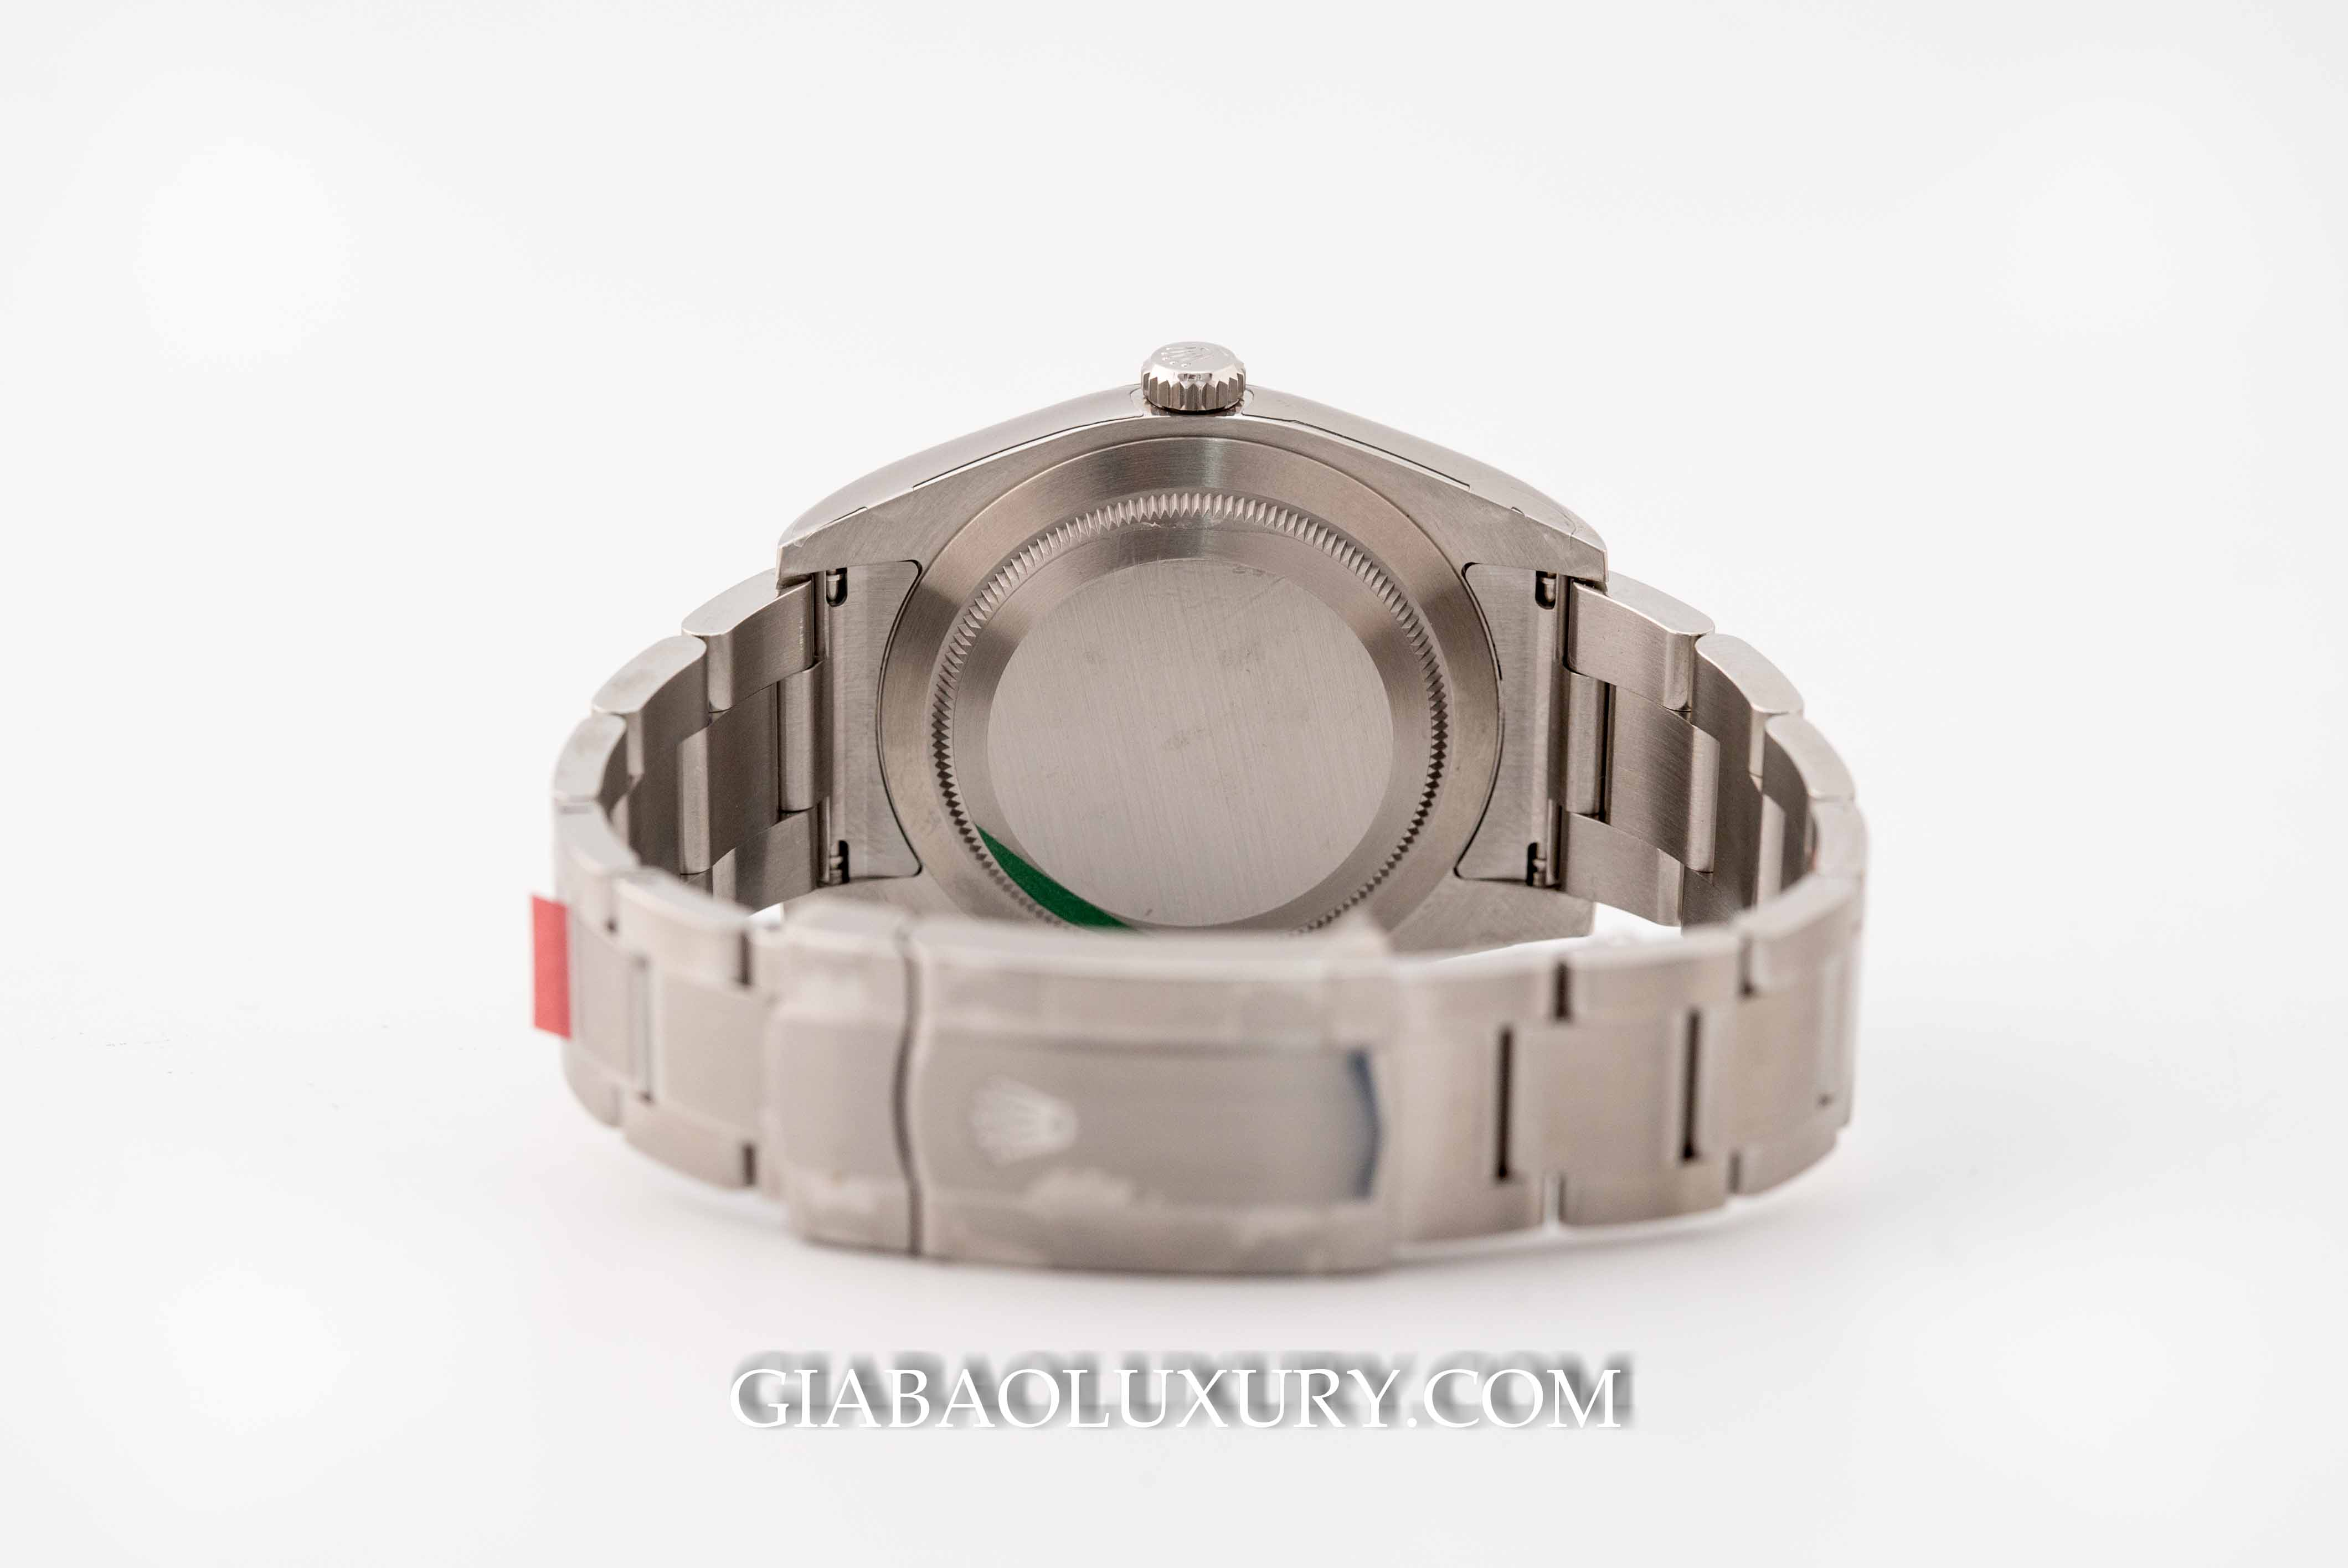 Đồng Hồ Rolex Oyster Perpetual 114300 Mặt Số Xanh